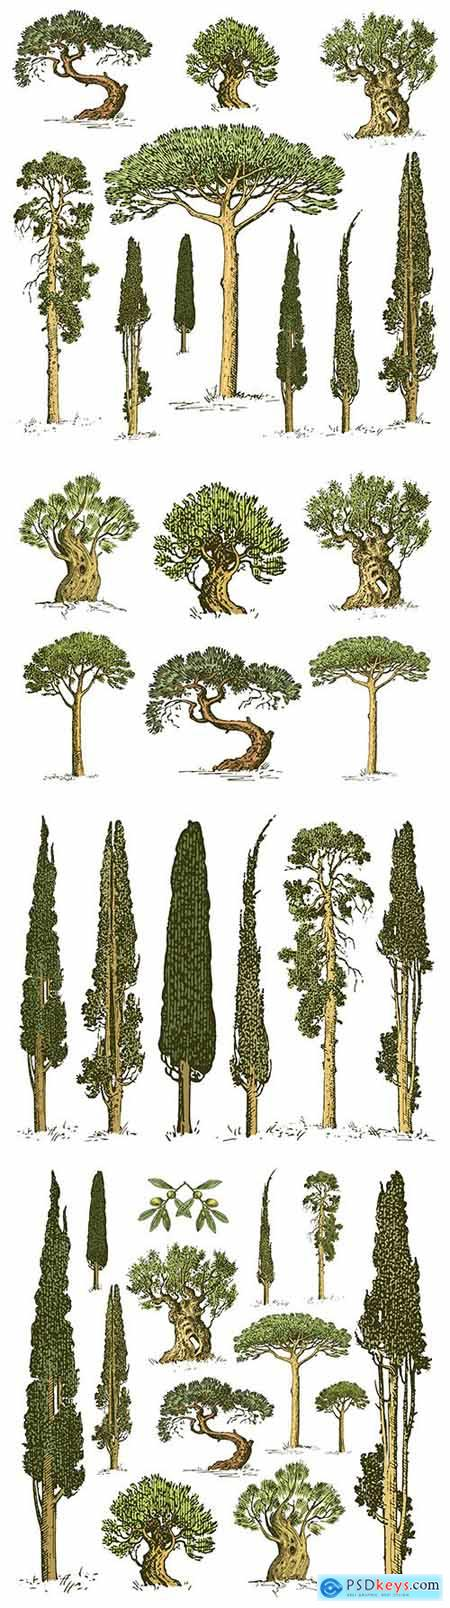 Trees different rocks set of engraved and painted illustrations